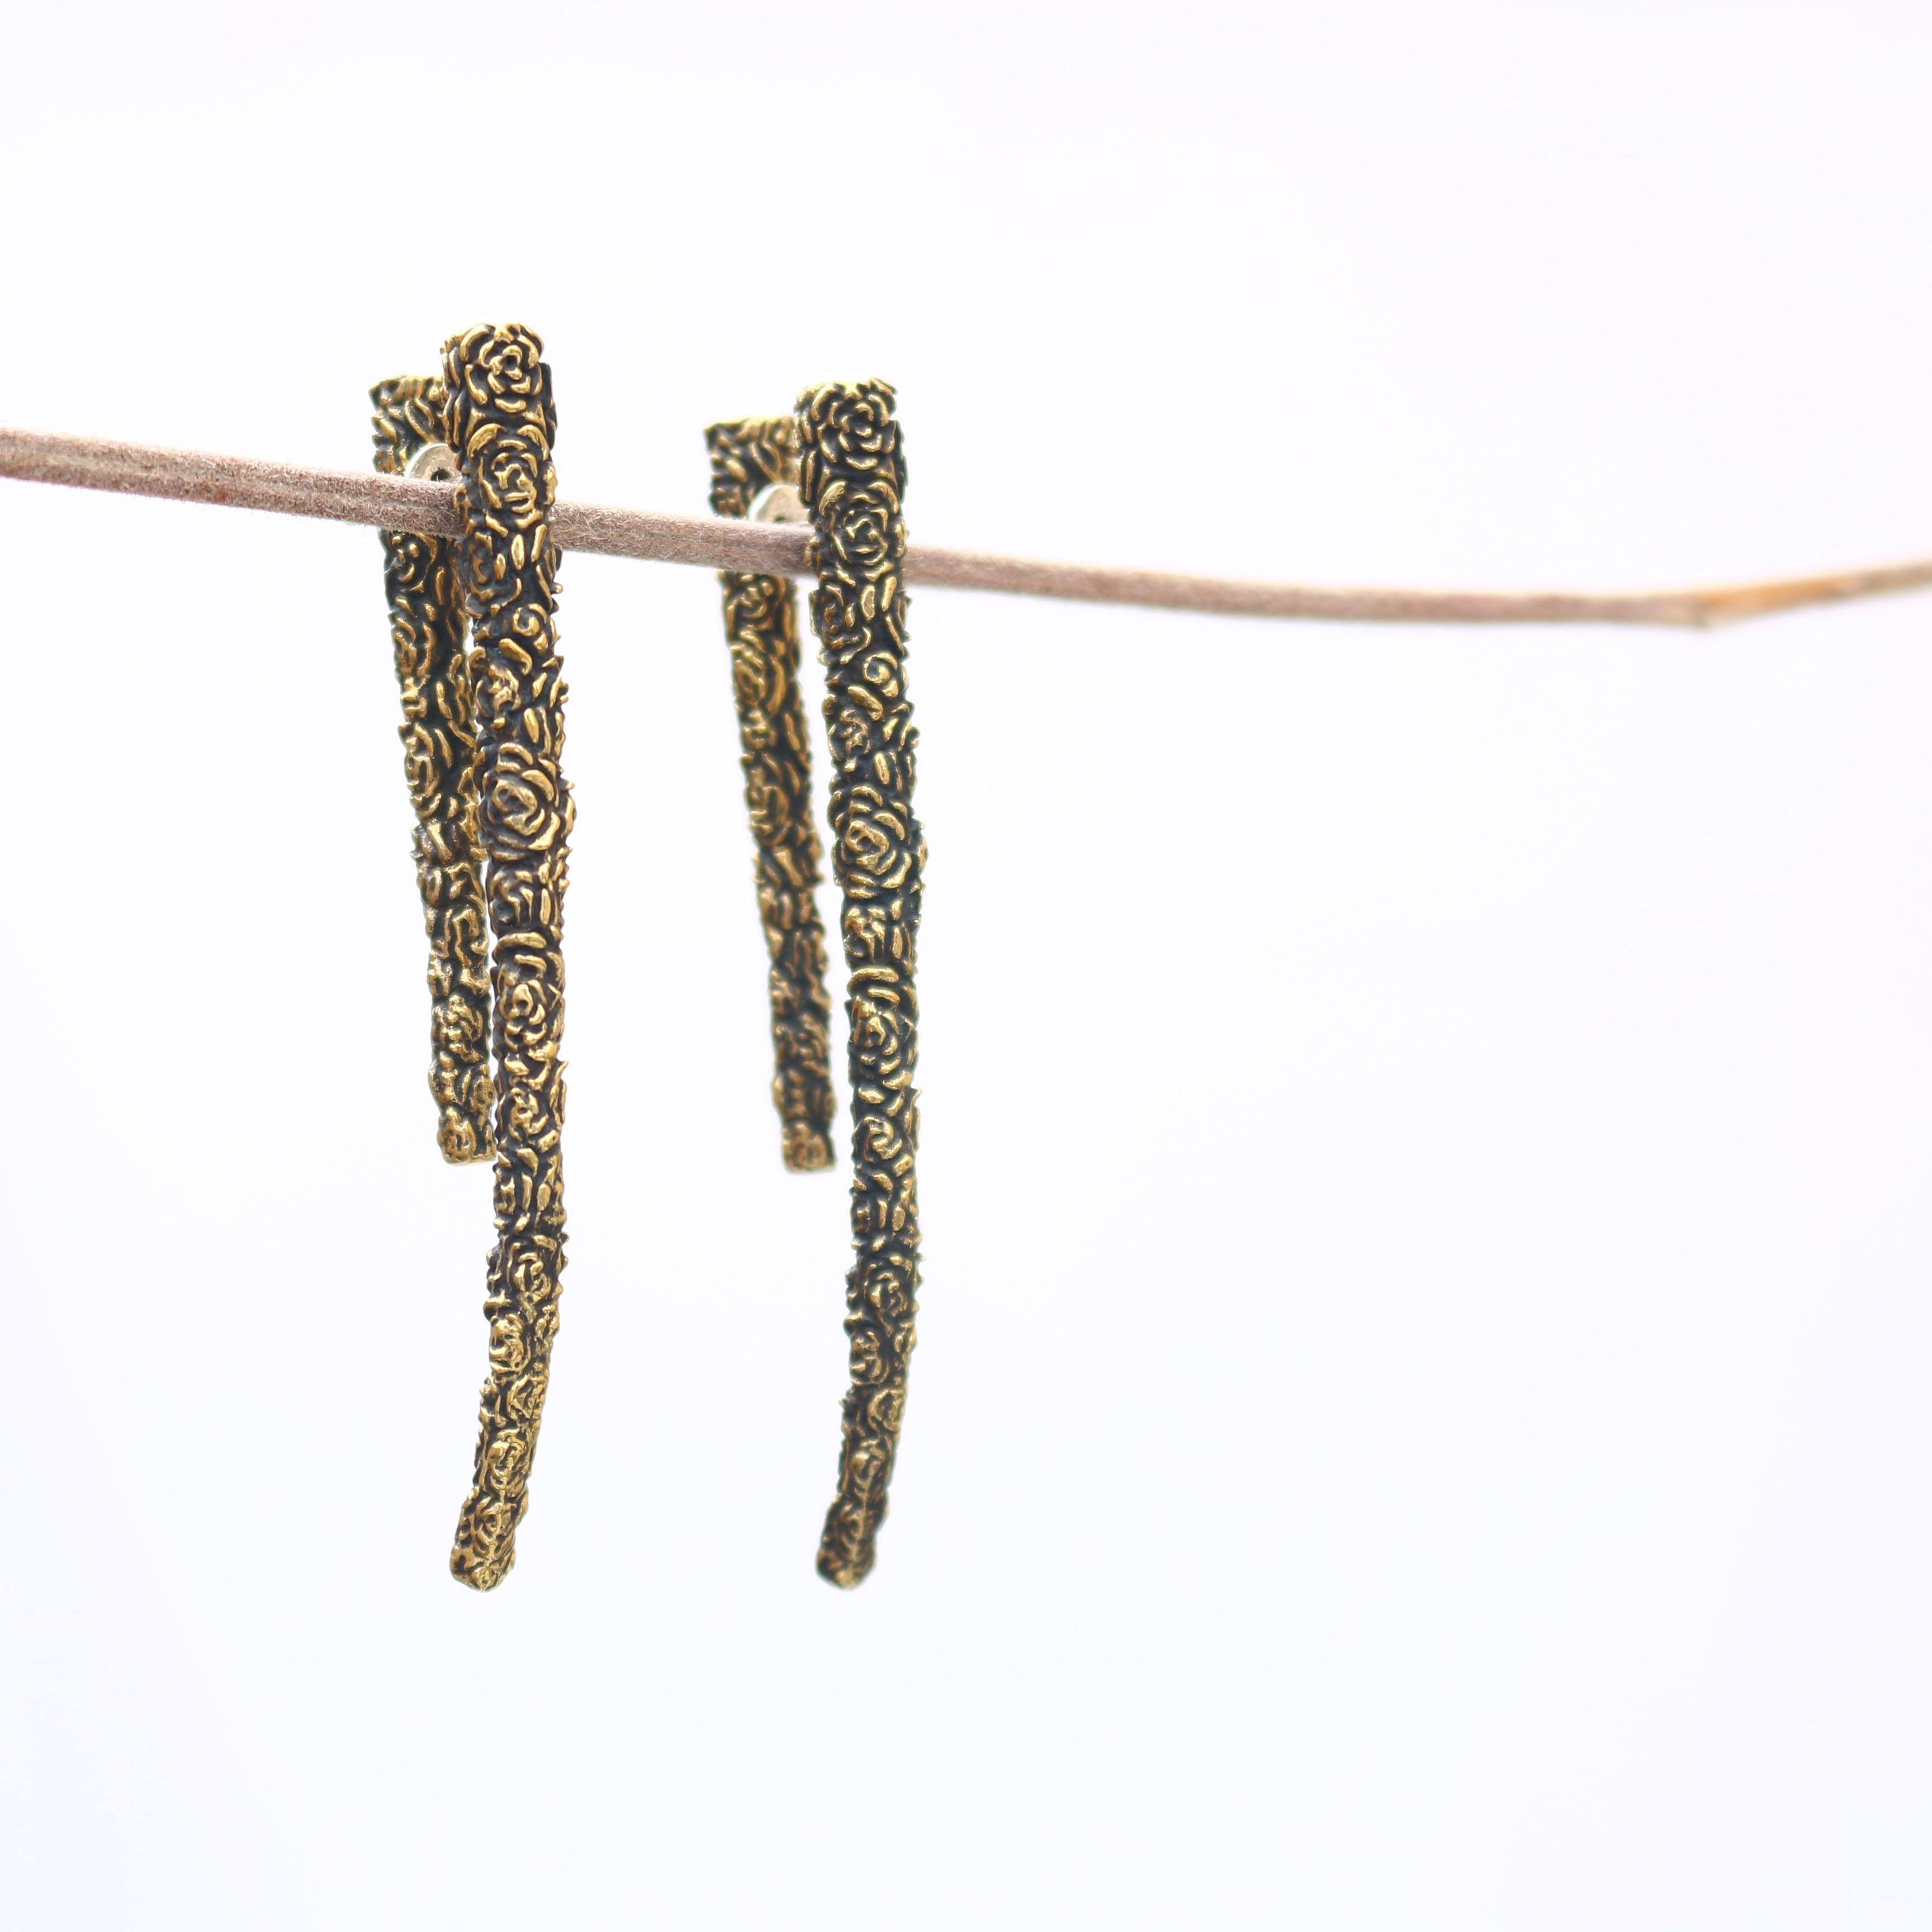 Pendolo Earrings - Trendivine